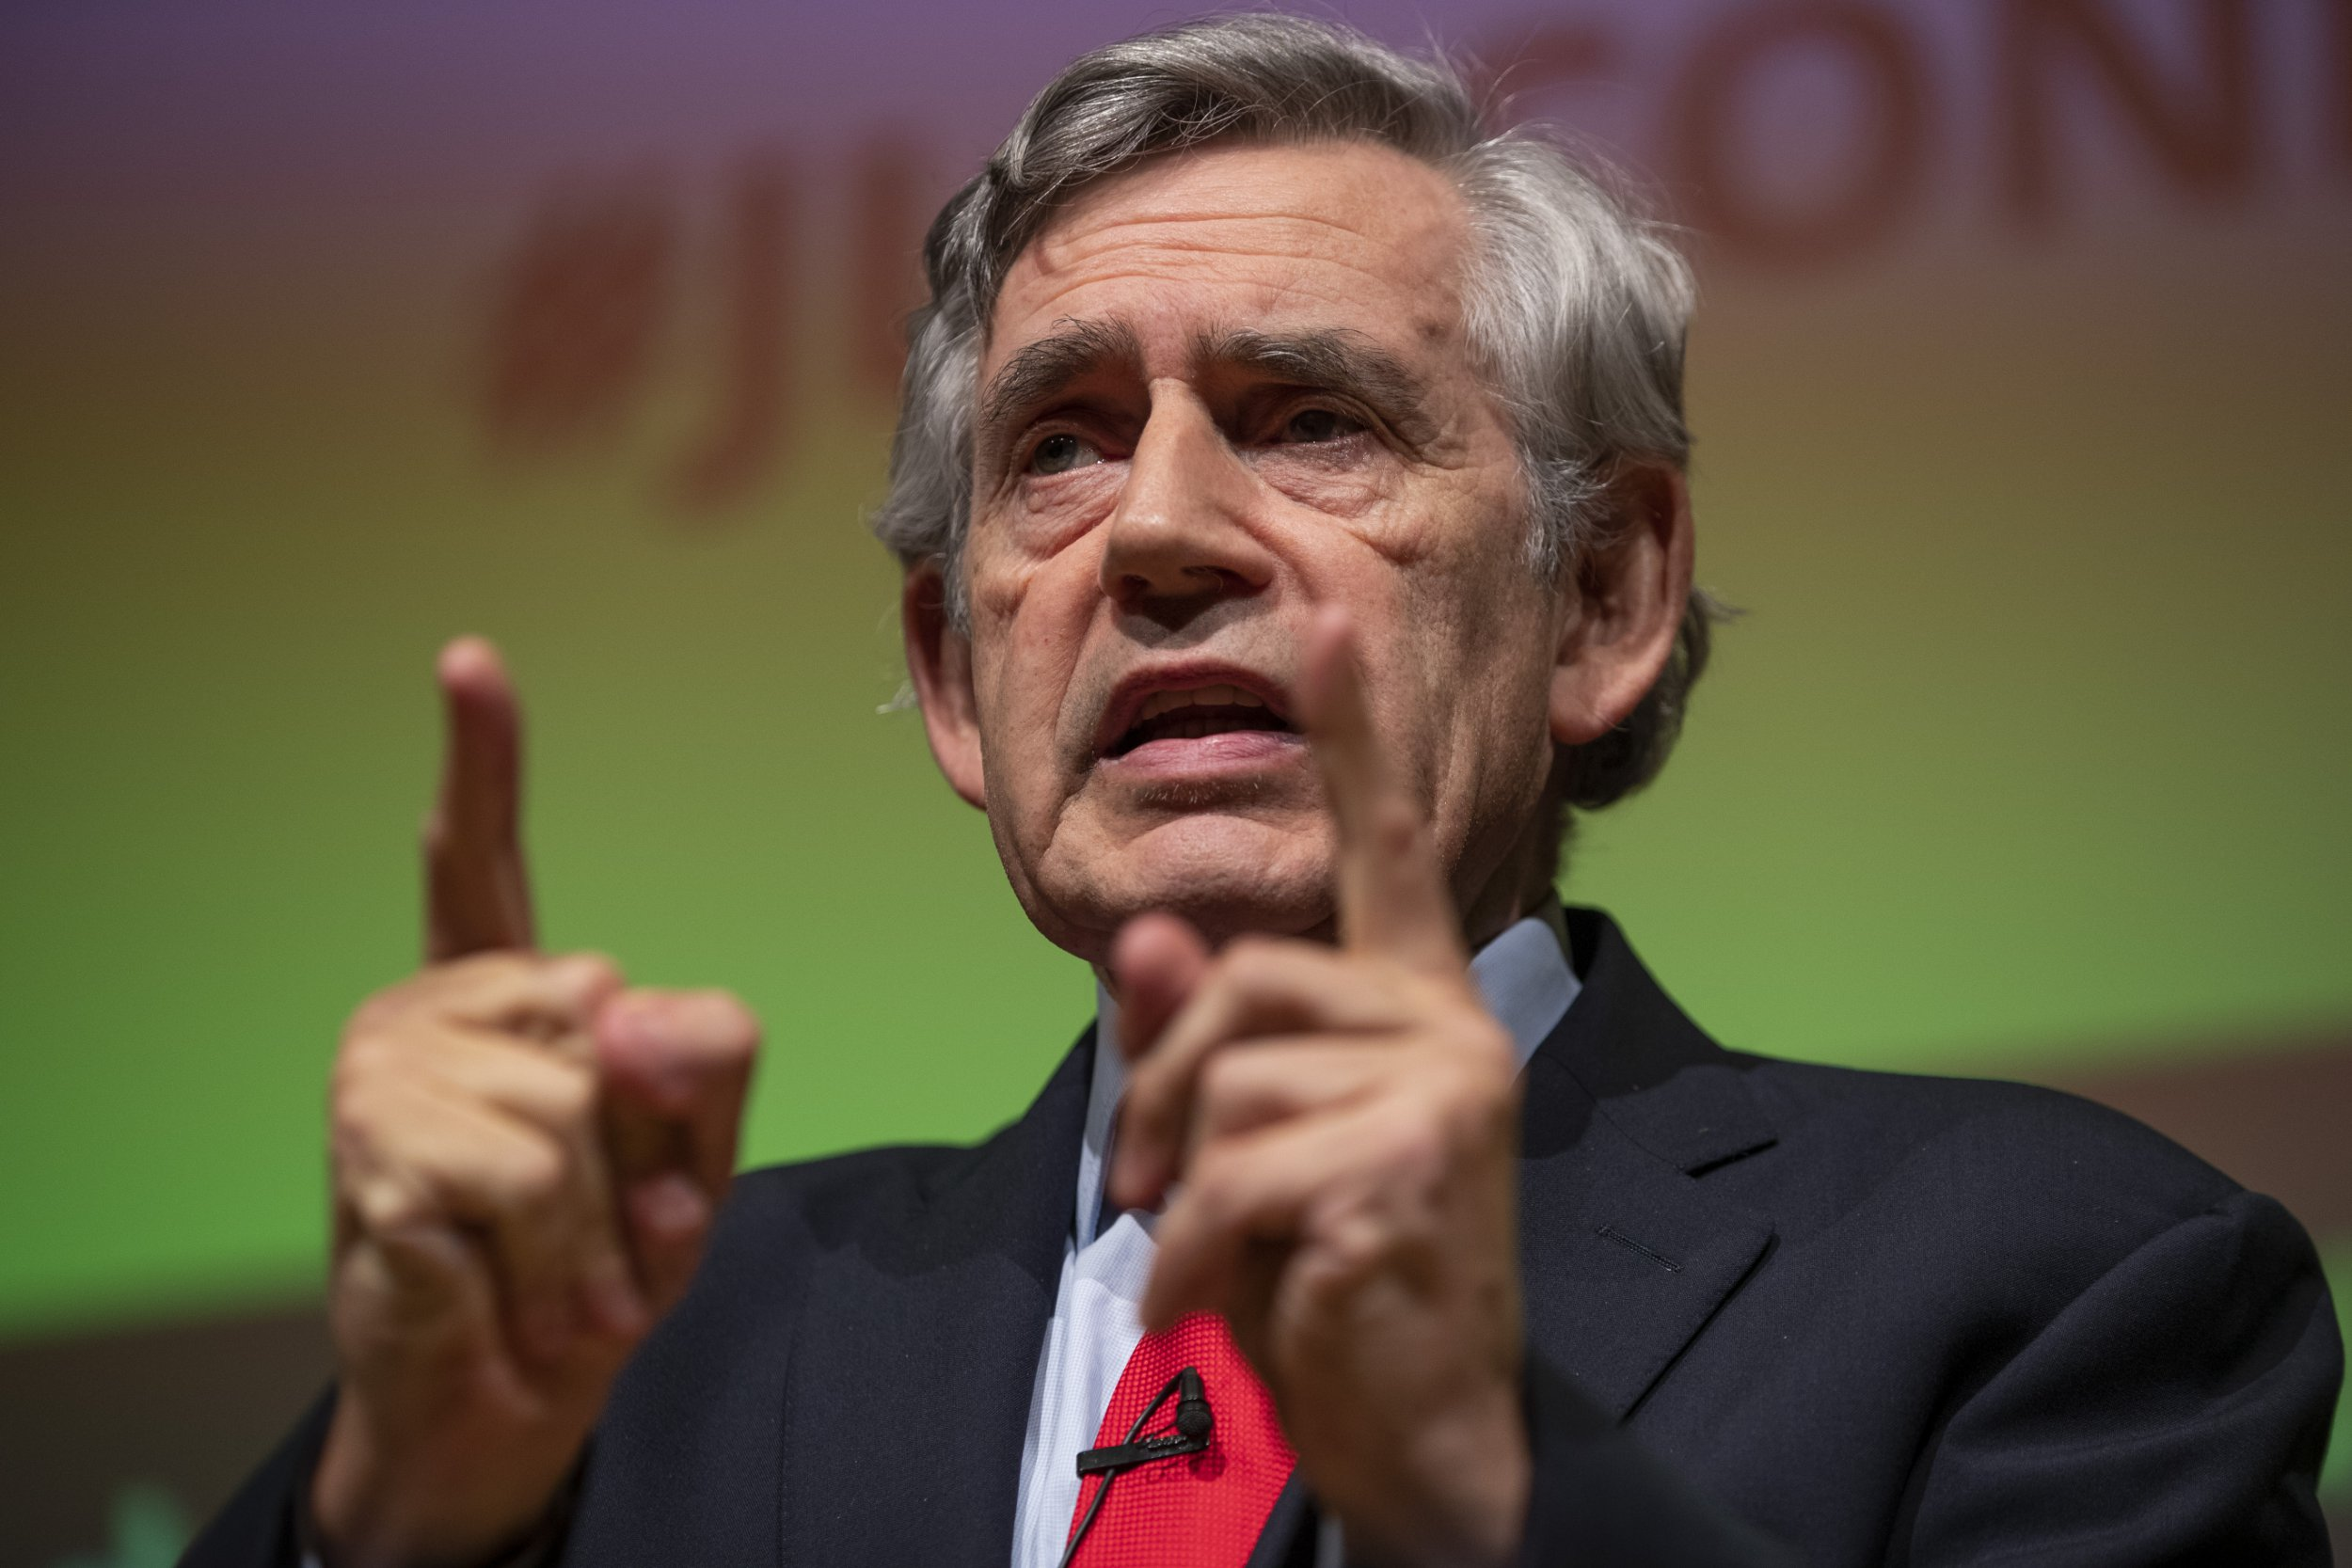 LONDON, ENGLAND - SEPTEMBER 02: Former Labour Prime Minister Gordon Brown attends the 'Jewish Labour Movement Conference' on September 2, 2018 in London, England. (Photo by Dan Kitwood/Getty Images)